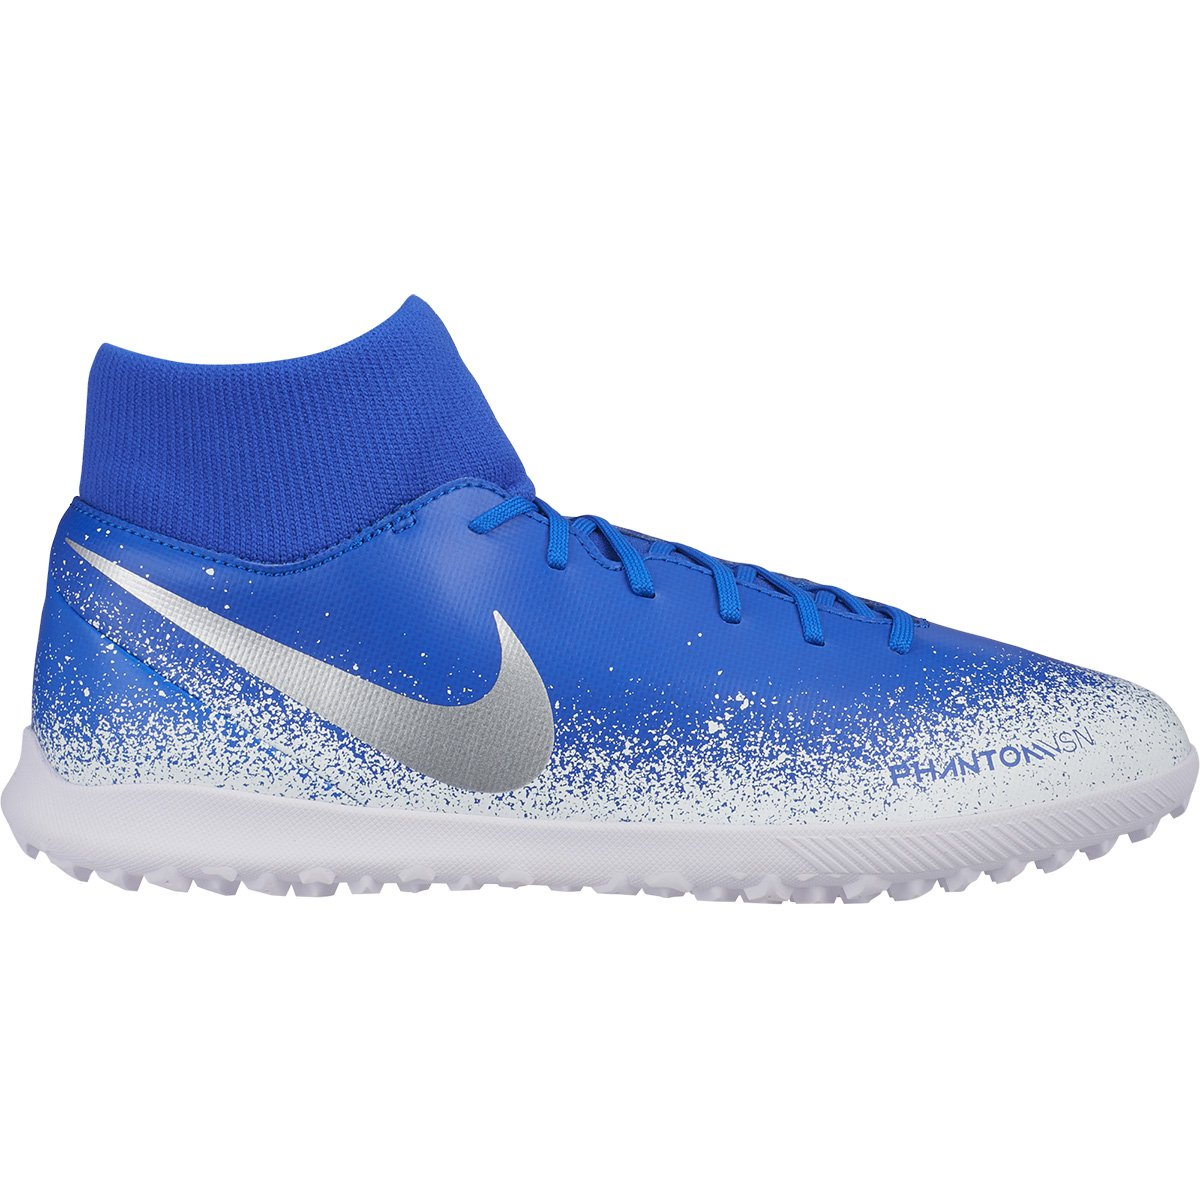 Chuteira Society Nike Phantom Vision Club DF TF - Verde Limão e Azul Royal